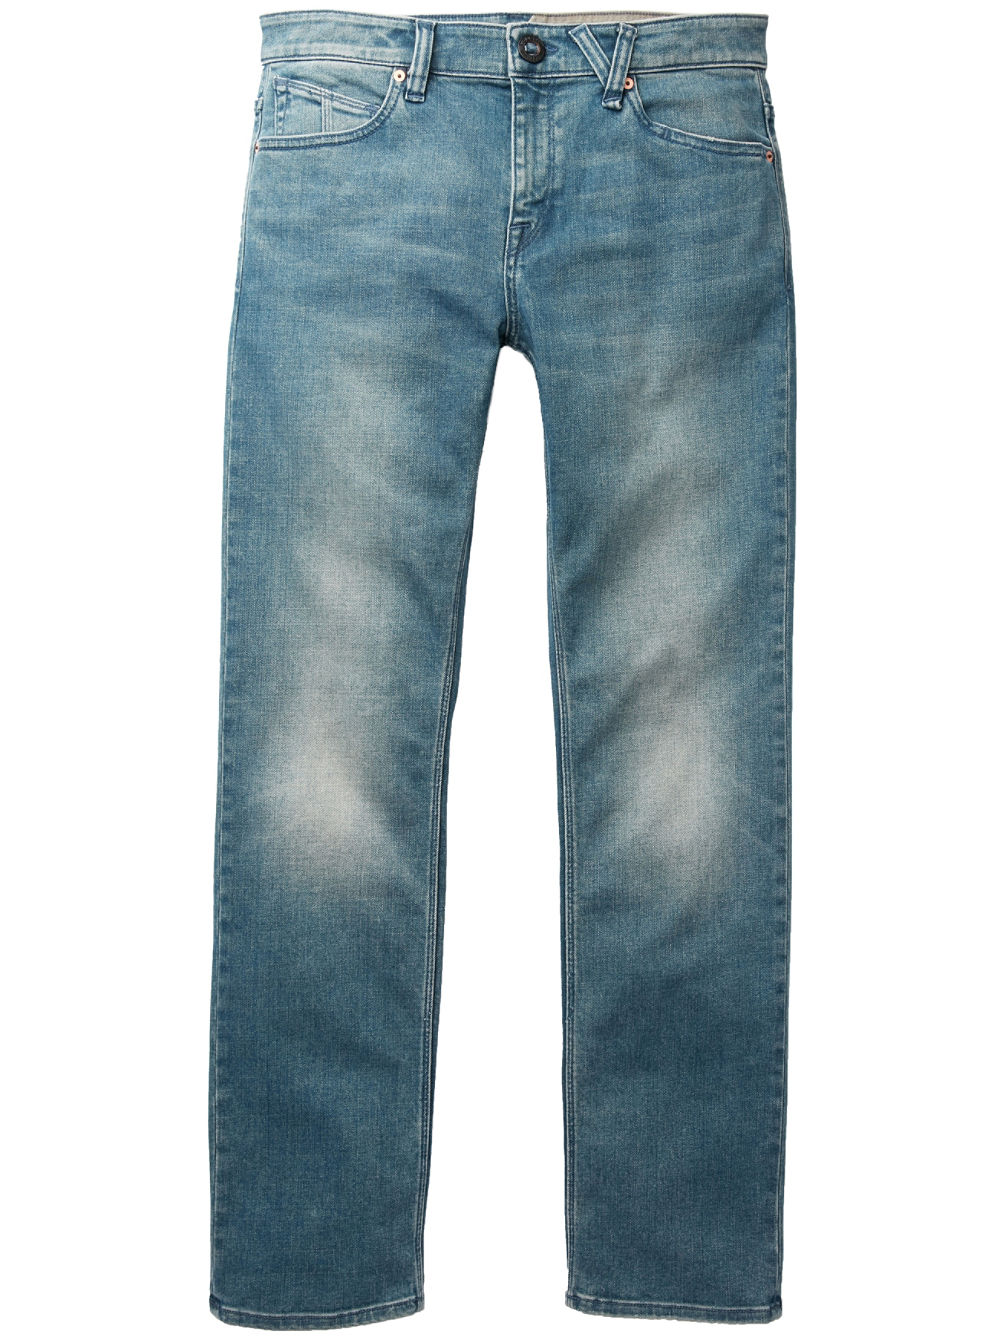 Solver Jeans